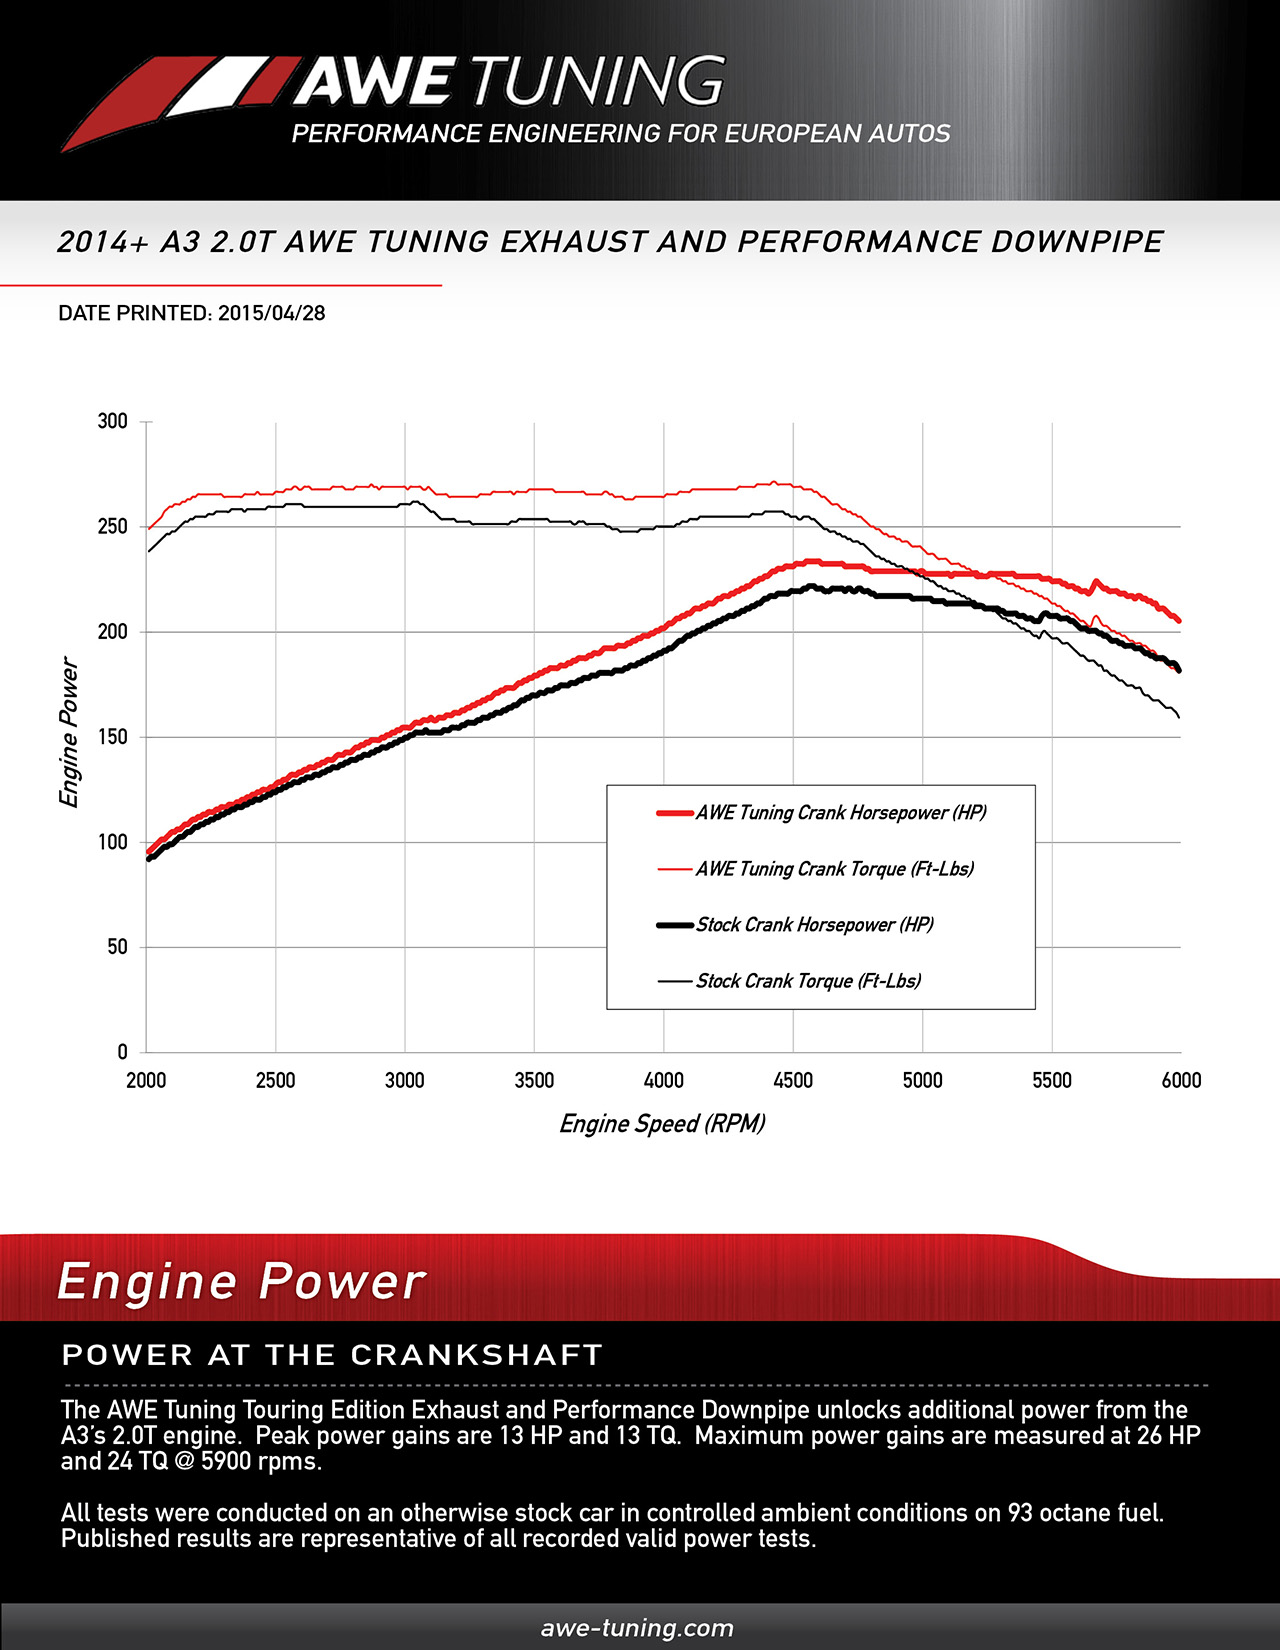 Crank Horsepower Gains for the AWE 8V A3 Exhaust System